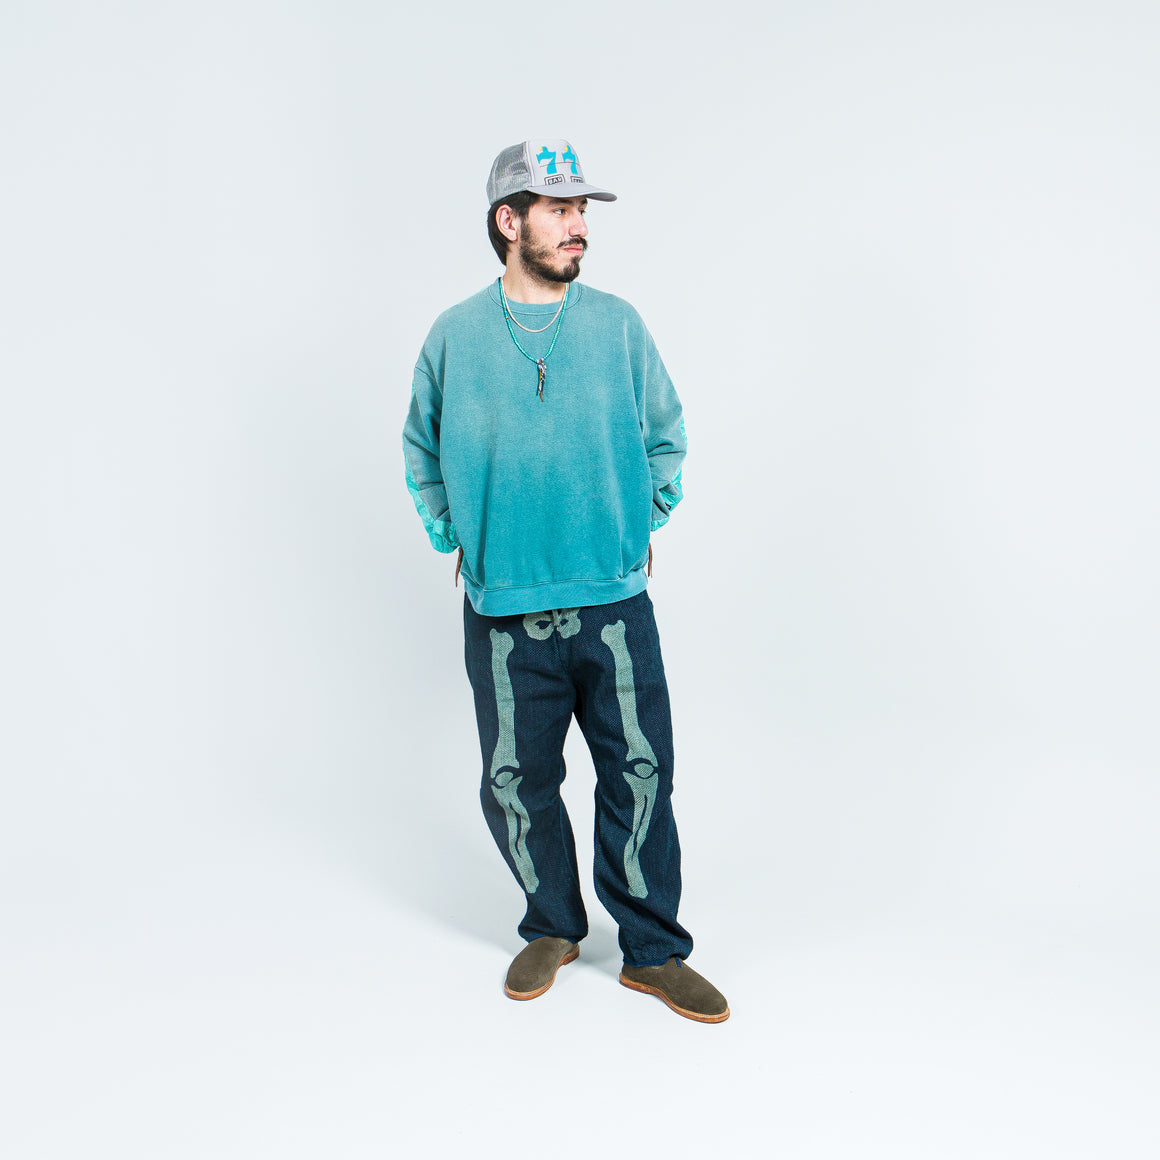 Kapital - Fleecy Knit Bivouac Big Sweat - Turquoise - Up There